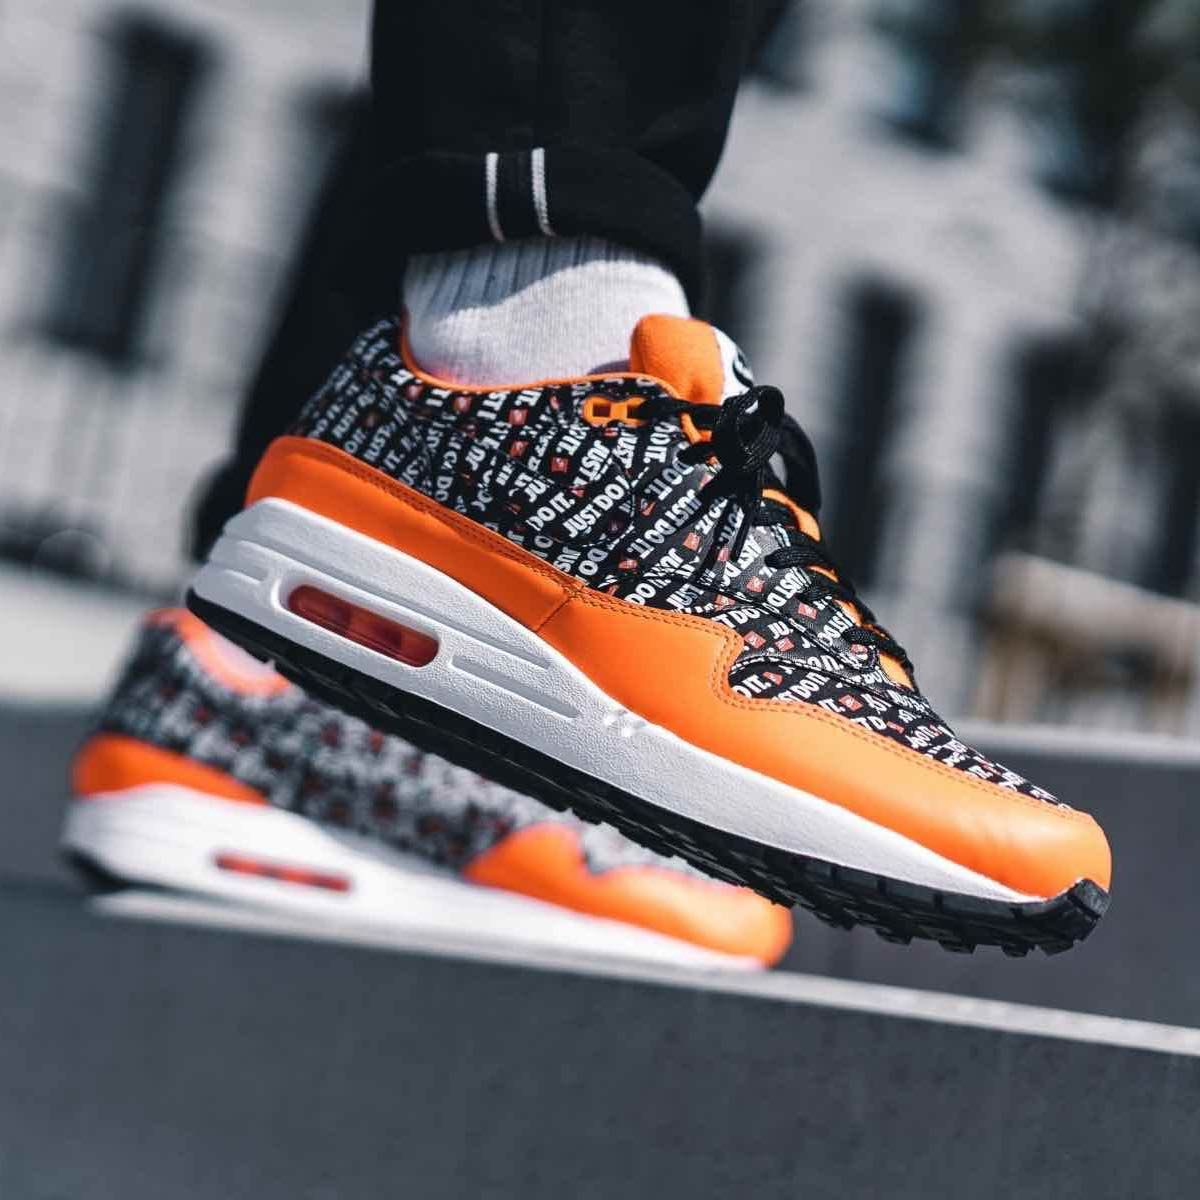 Nike Air Max 1 Premium « Just Do It » Black Orange White